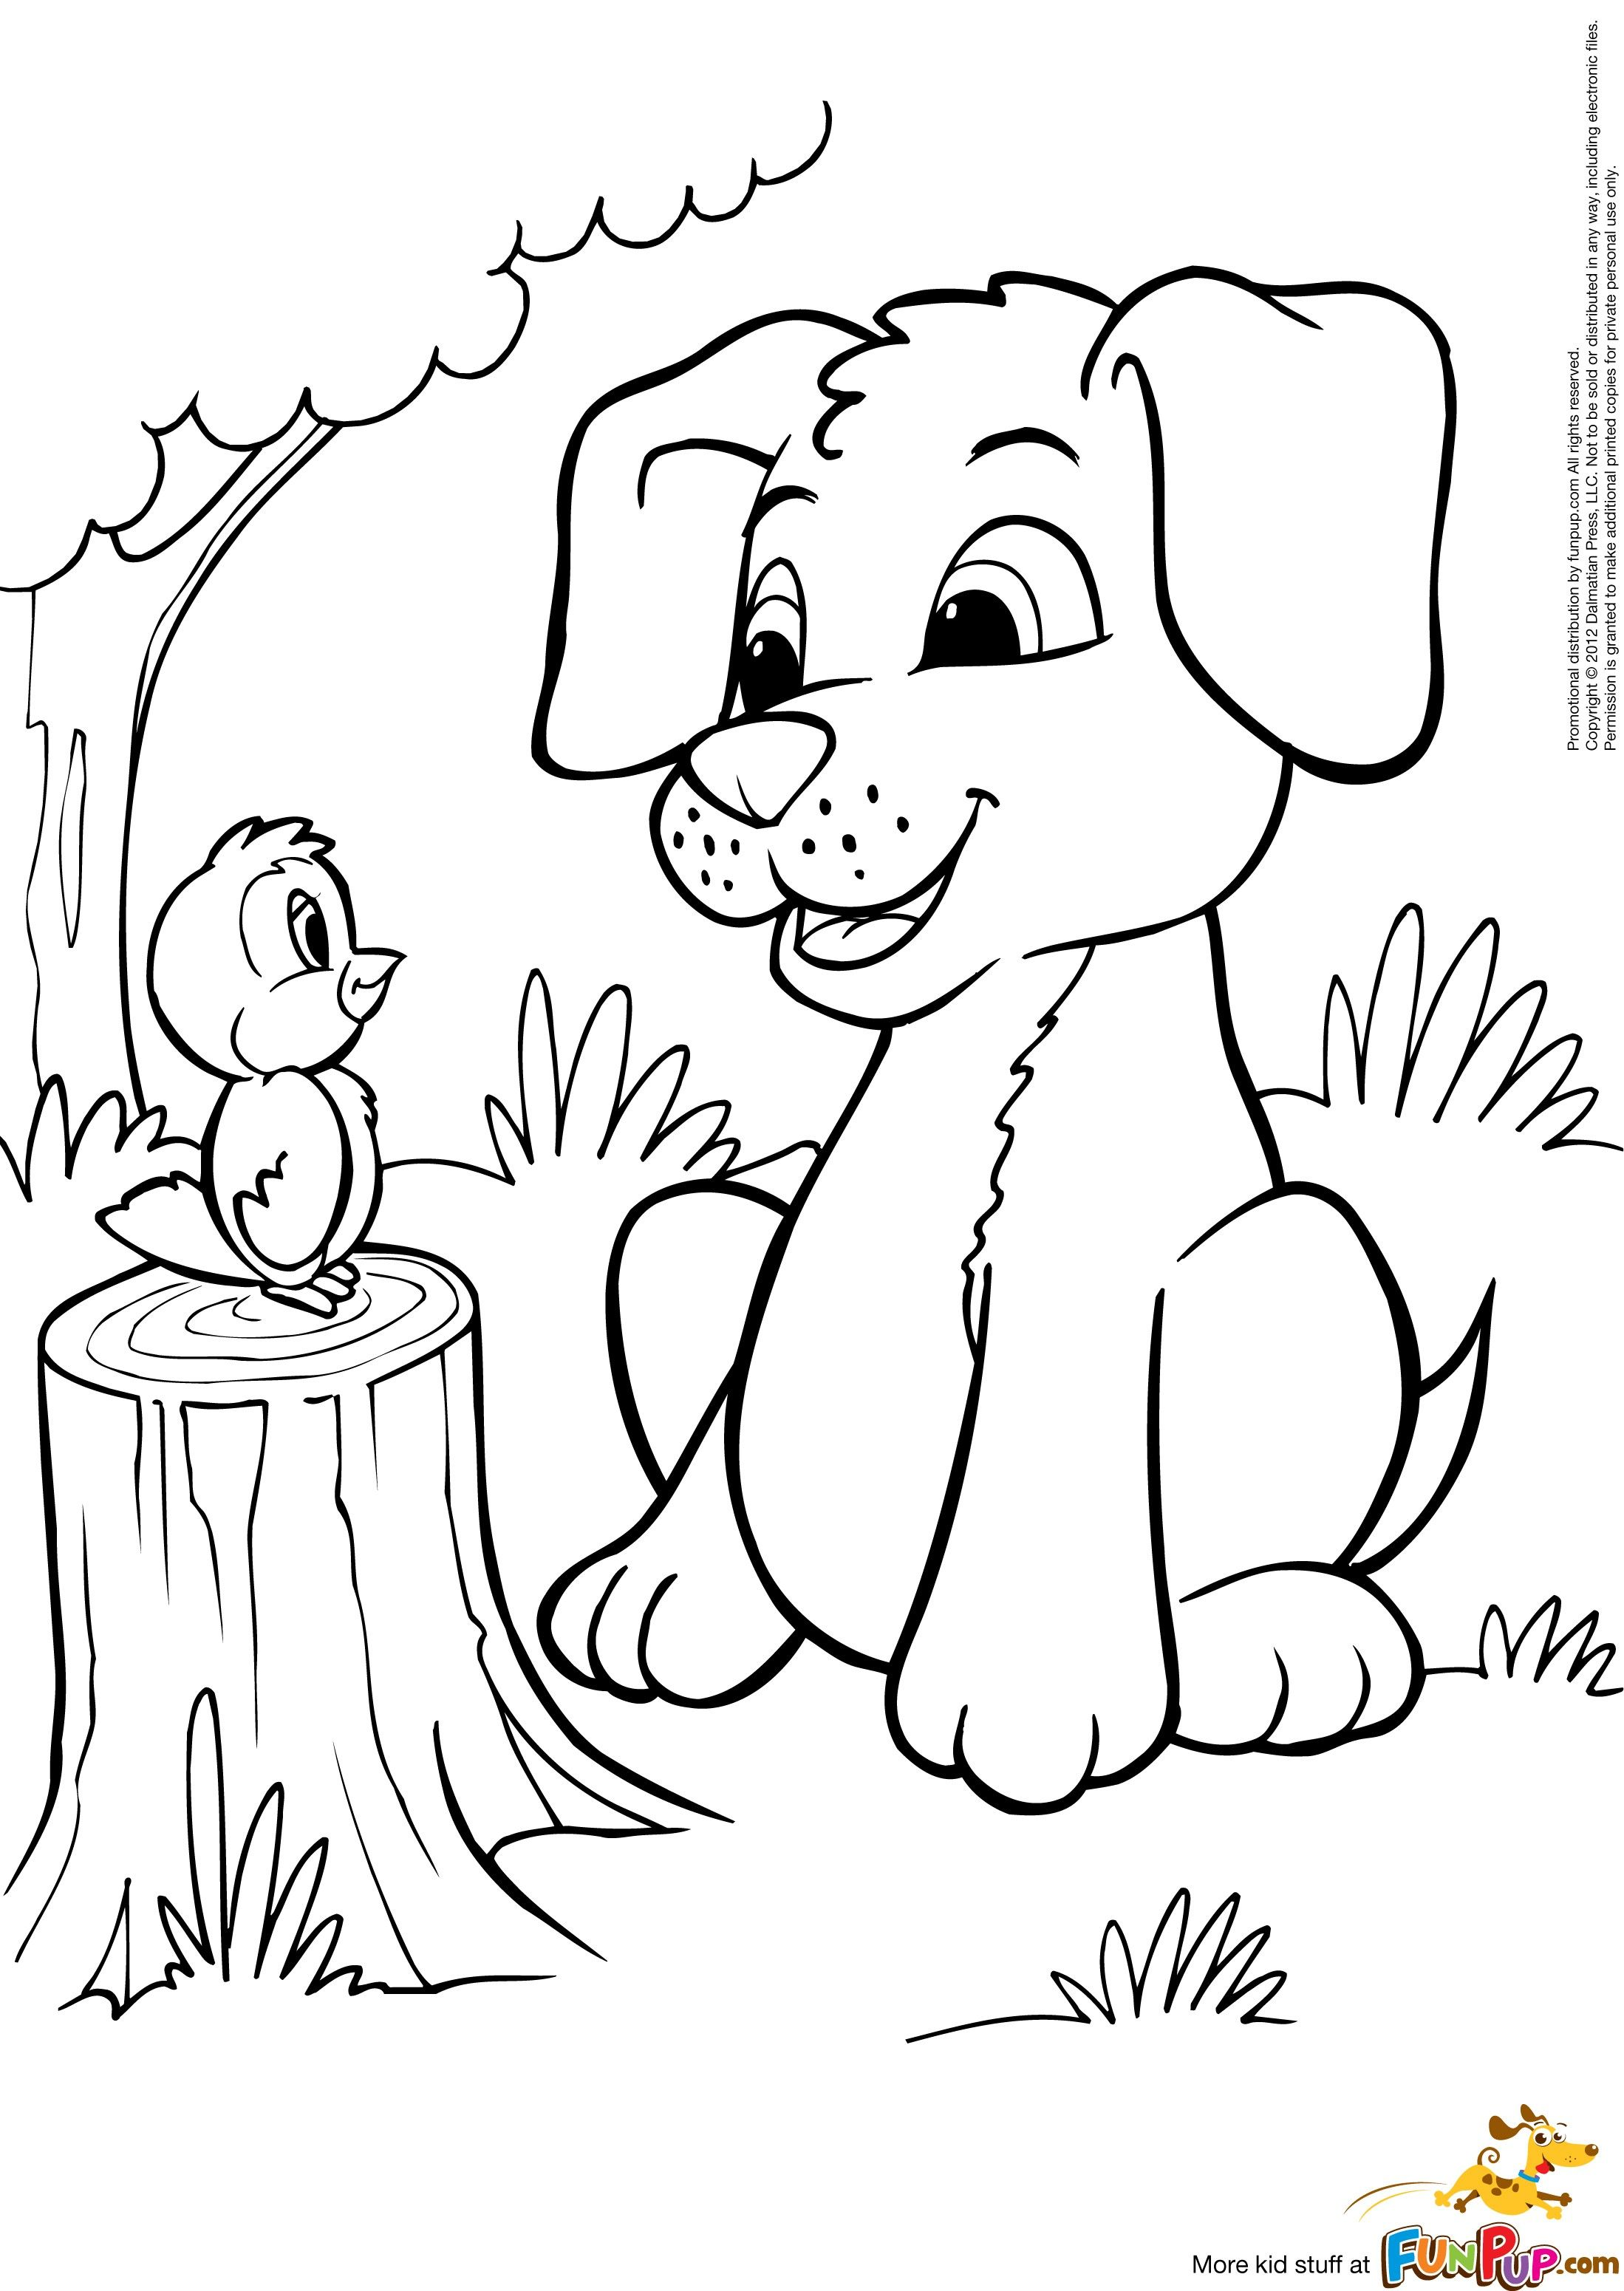 animal coloring pages for kids dogs jokes | Photo : Puppies Colouring Pages Images | Bird coloring ...